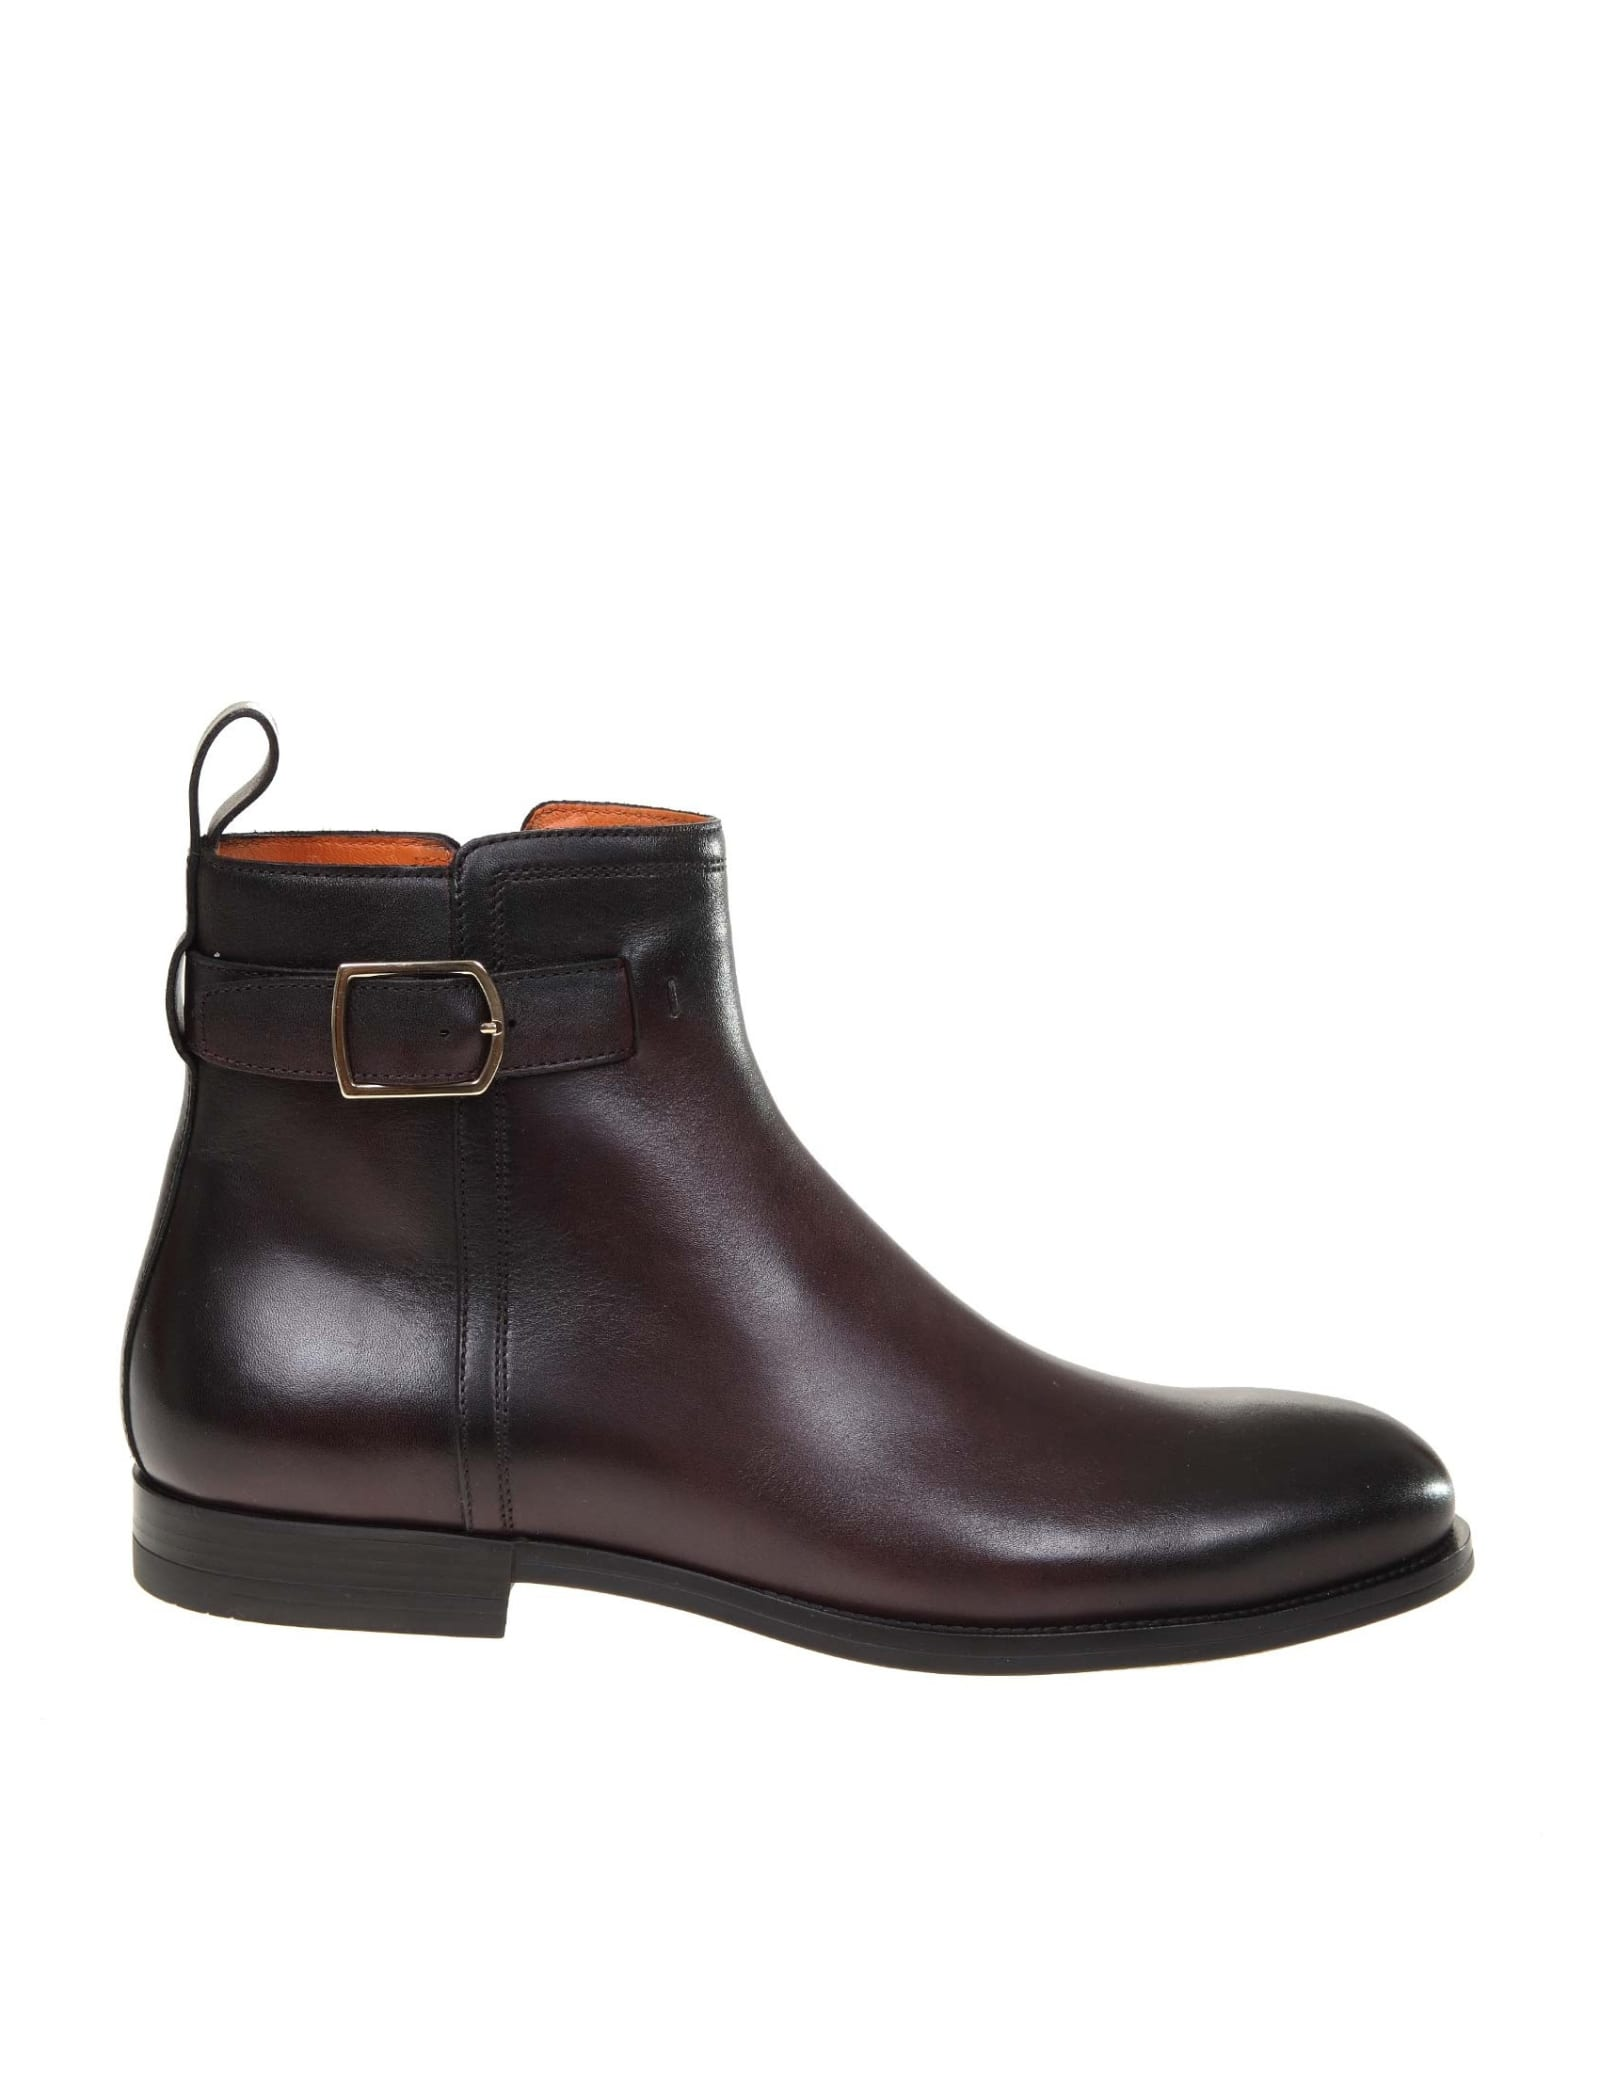 Santoni Ankle Boot In Leather And Brown Color